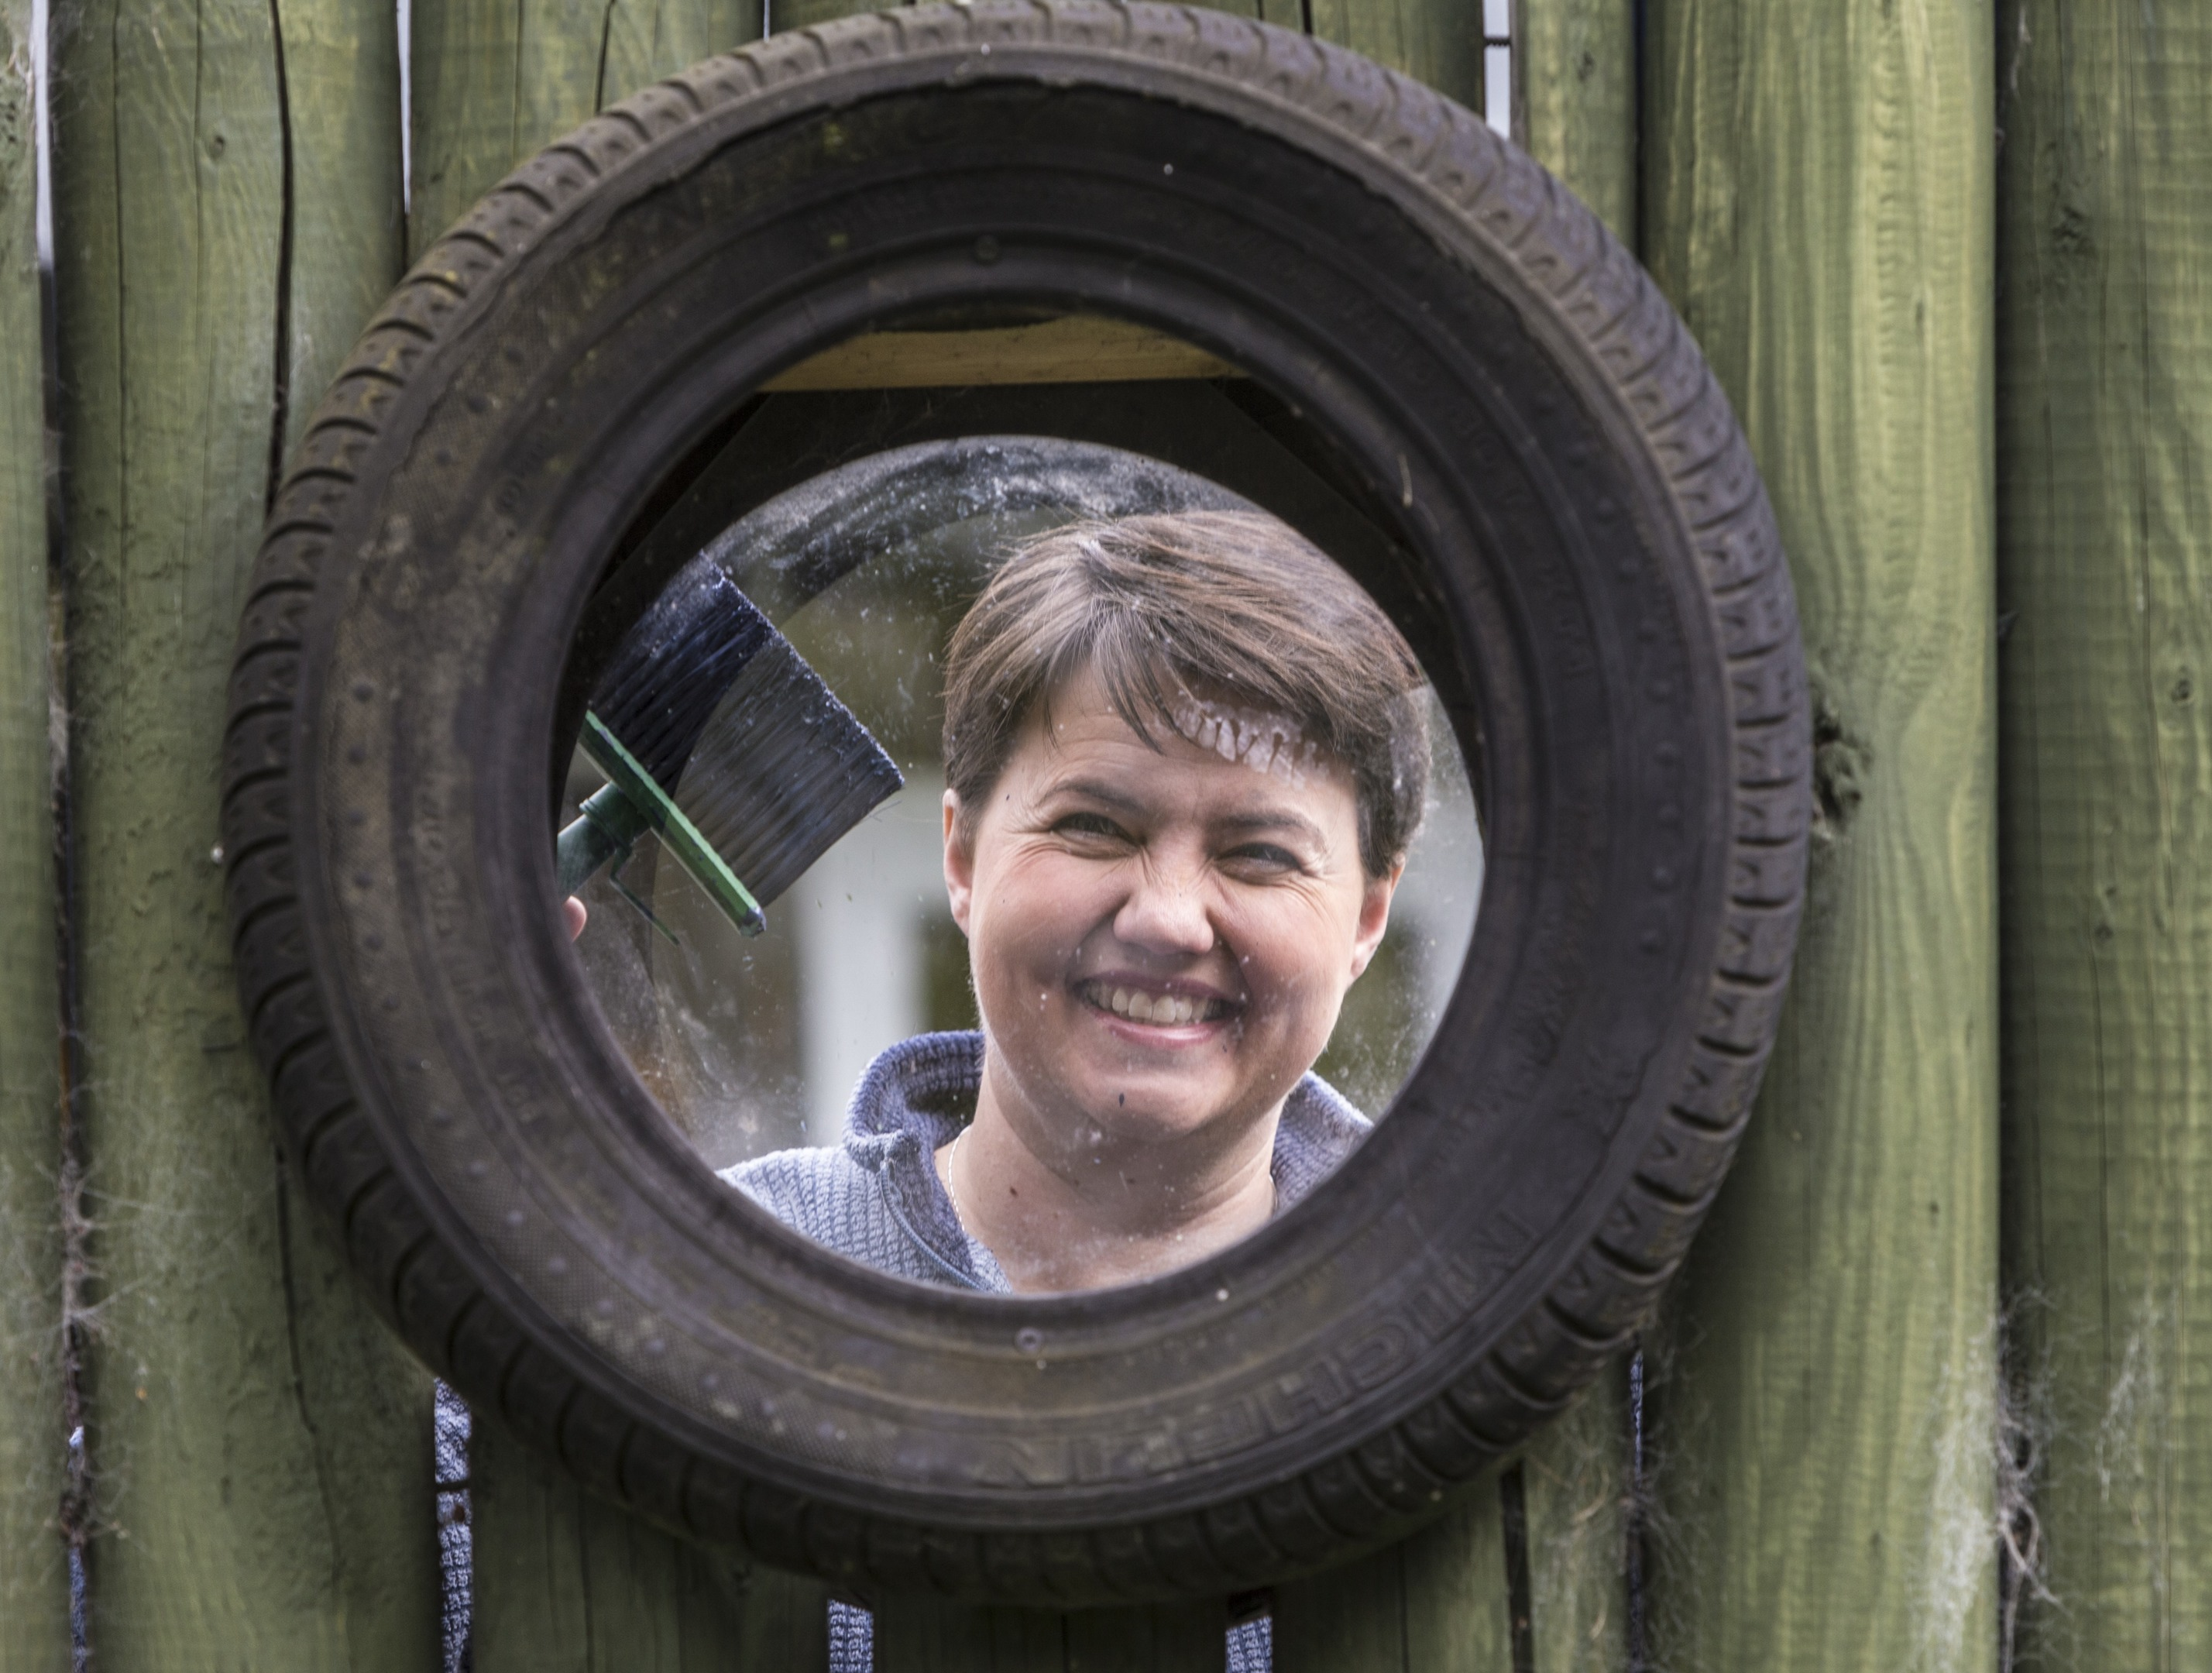 Ruth Davidson at a community playground during the launch of the manifesto